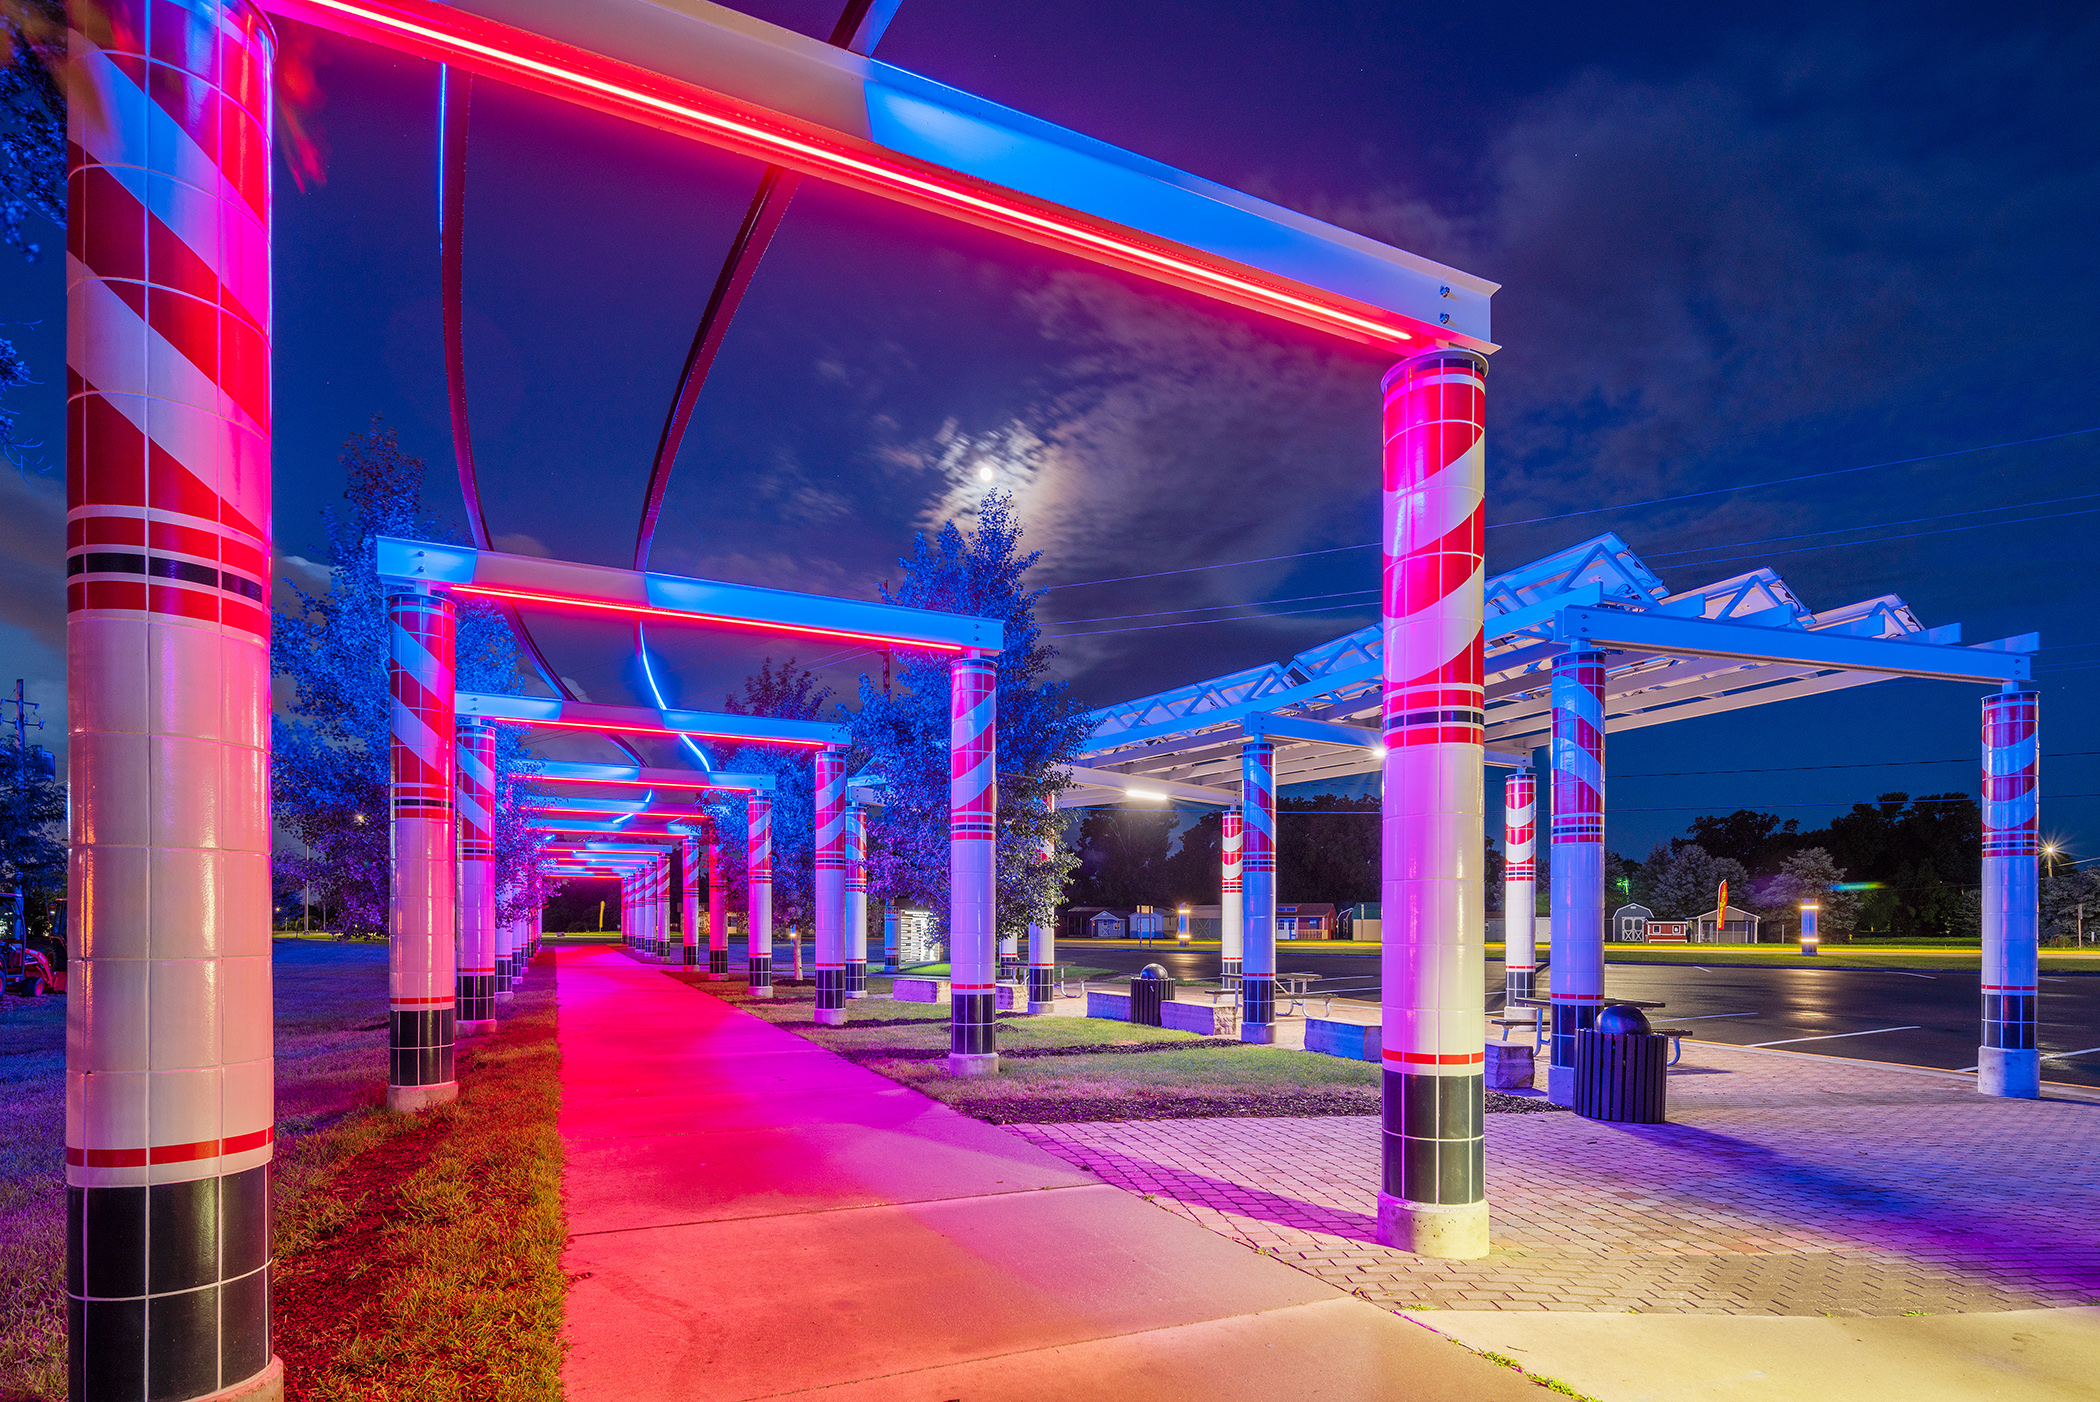 Waukee Railroad Pergola: In the Shadow of the Rails